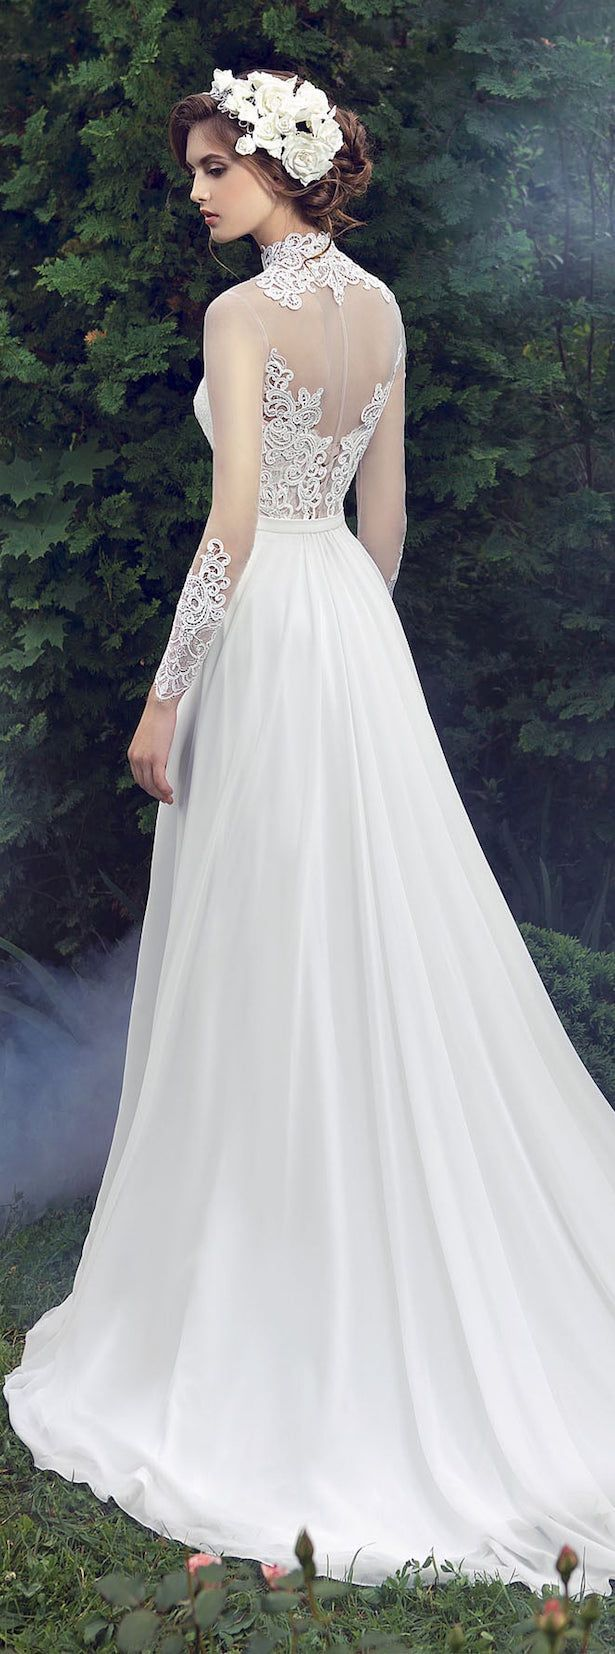 1000+ ideas about Fairy Wedding Dress on Pinterest ...